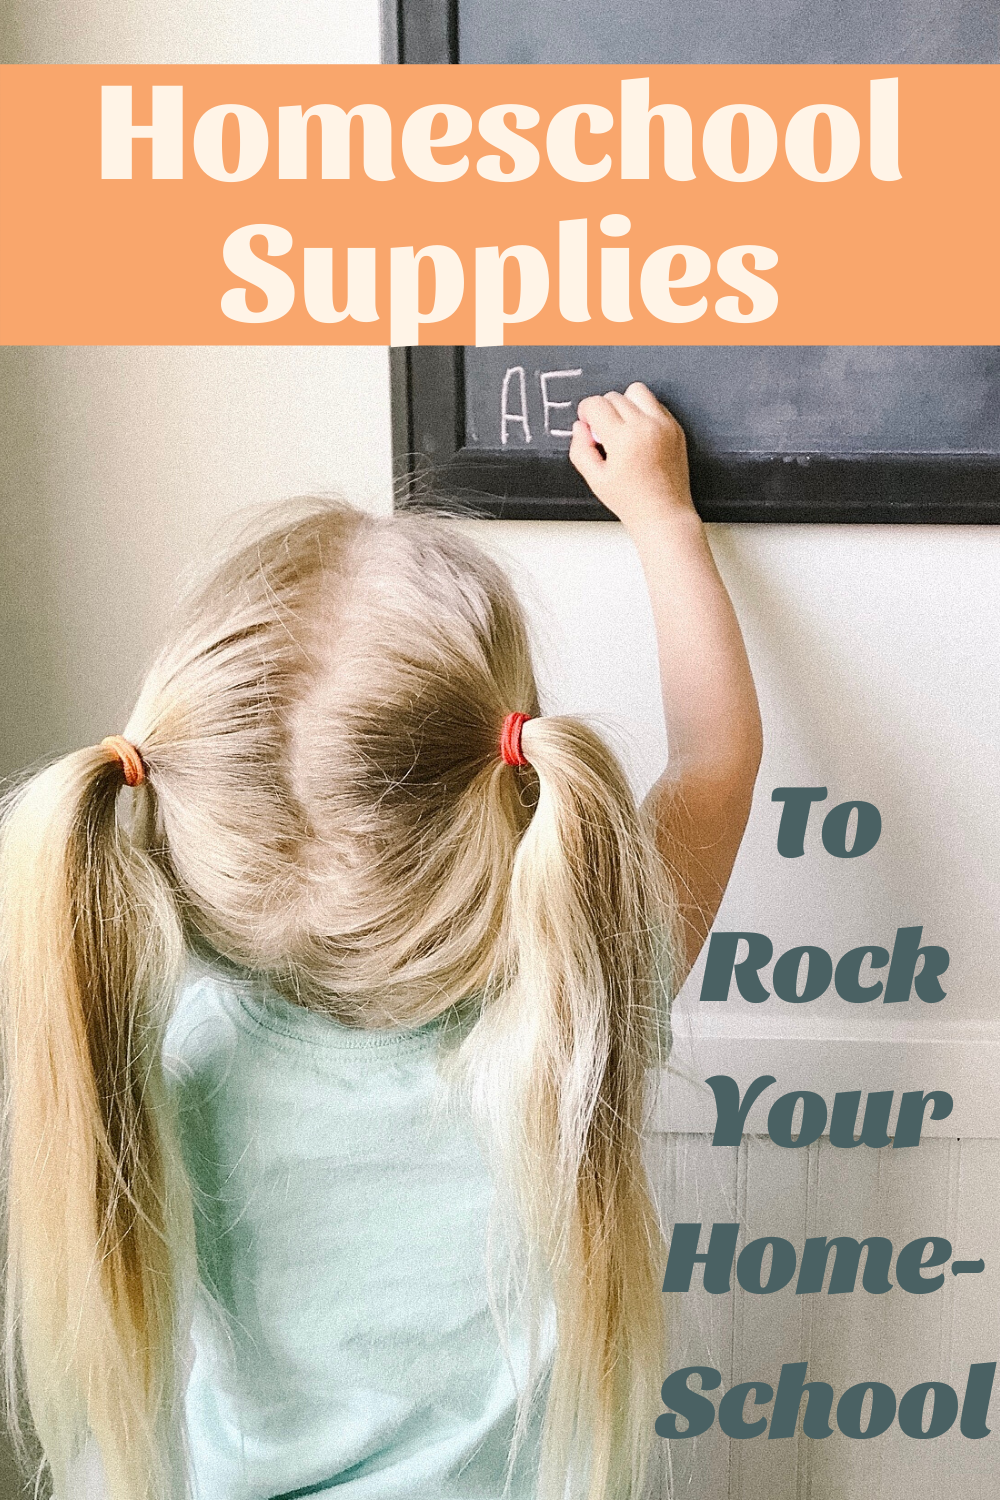 must-have-homeschool-supplies-pinterest-image